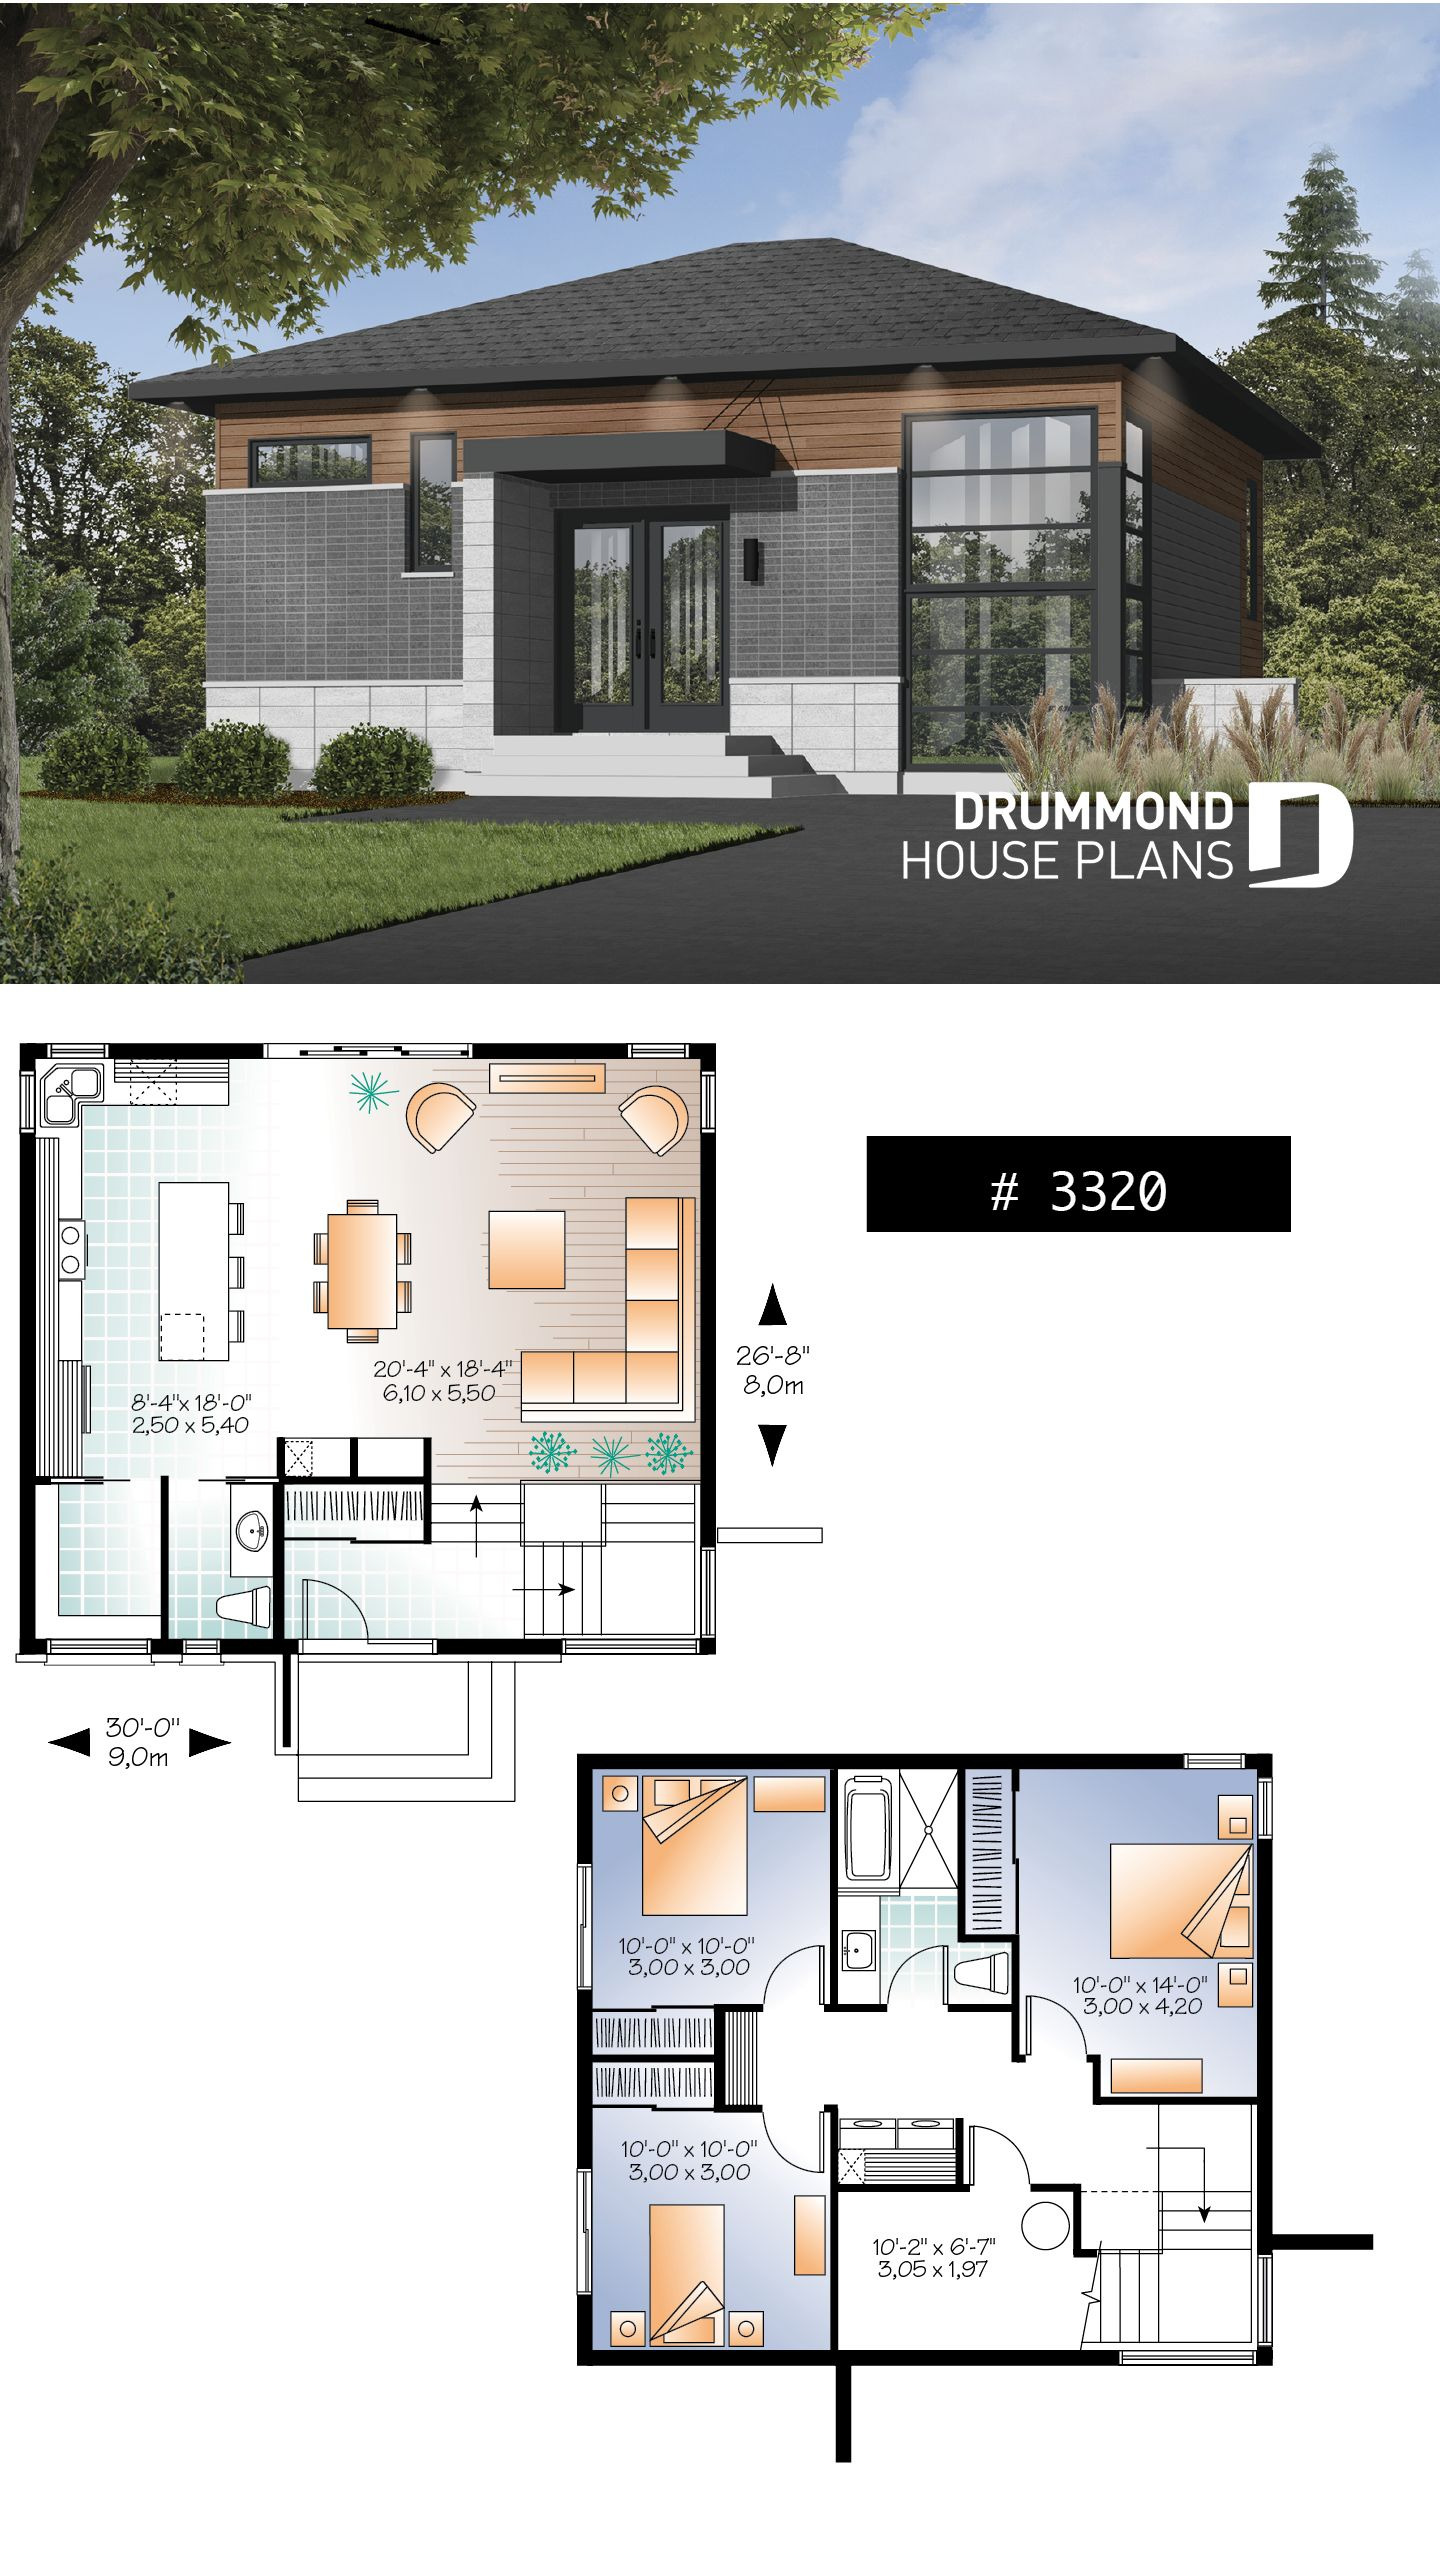 Small Contemporary House Plans Elegant Contemporary House Floor Plans and Designs Kumpalo